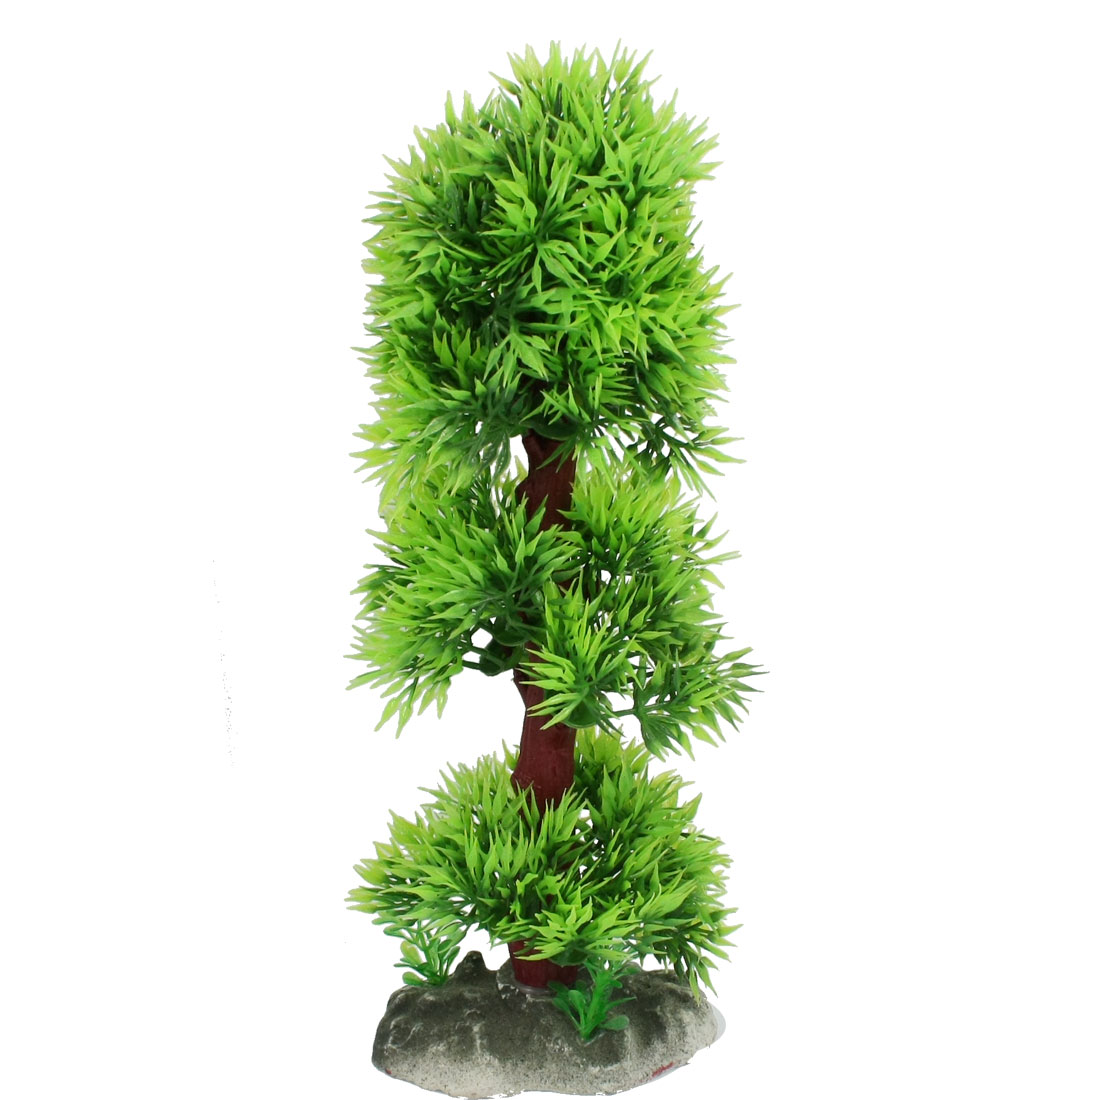 "Ceramic Base 9.0"" Height Manmade Plant Grass Ornament for Fish Aquarium"